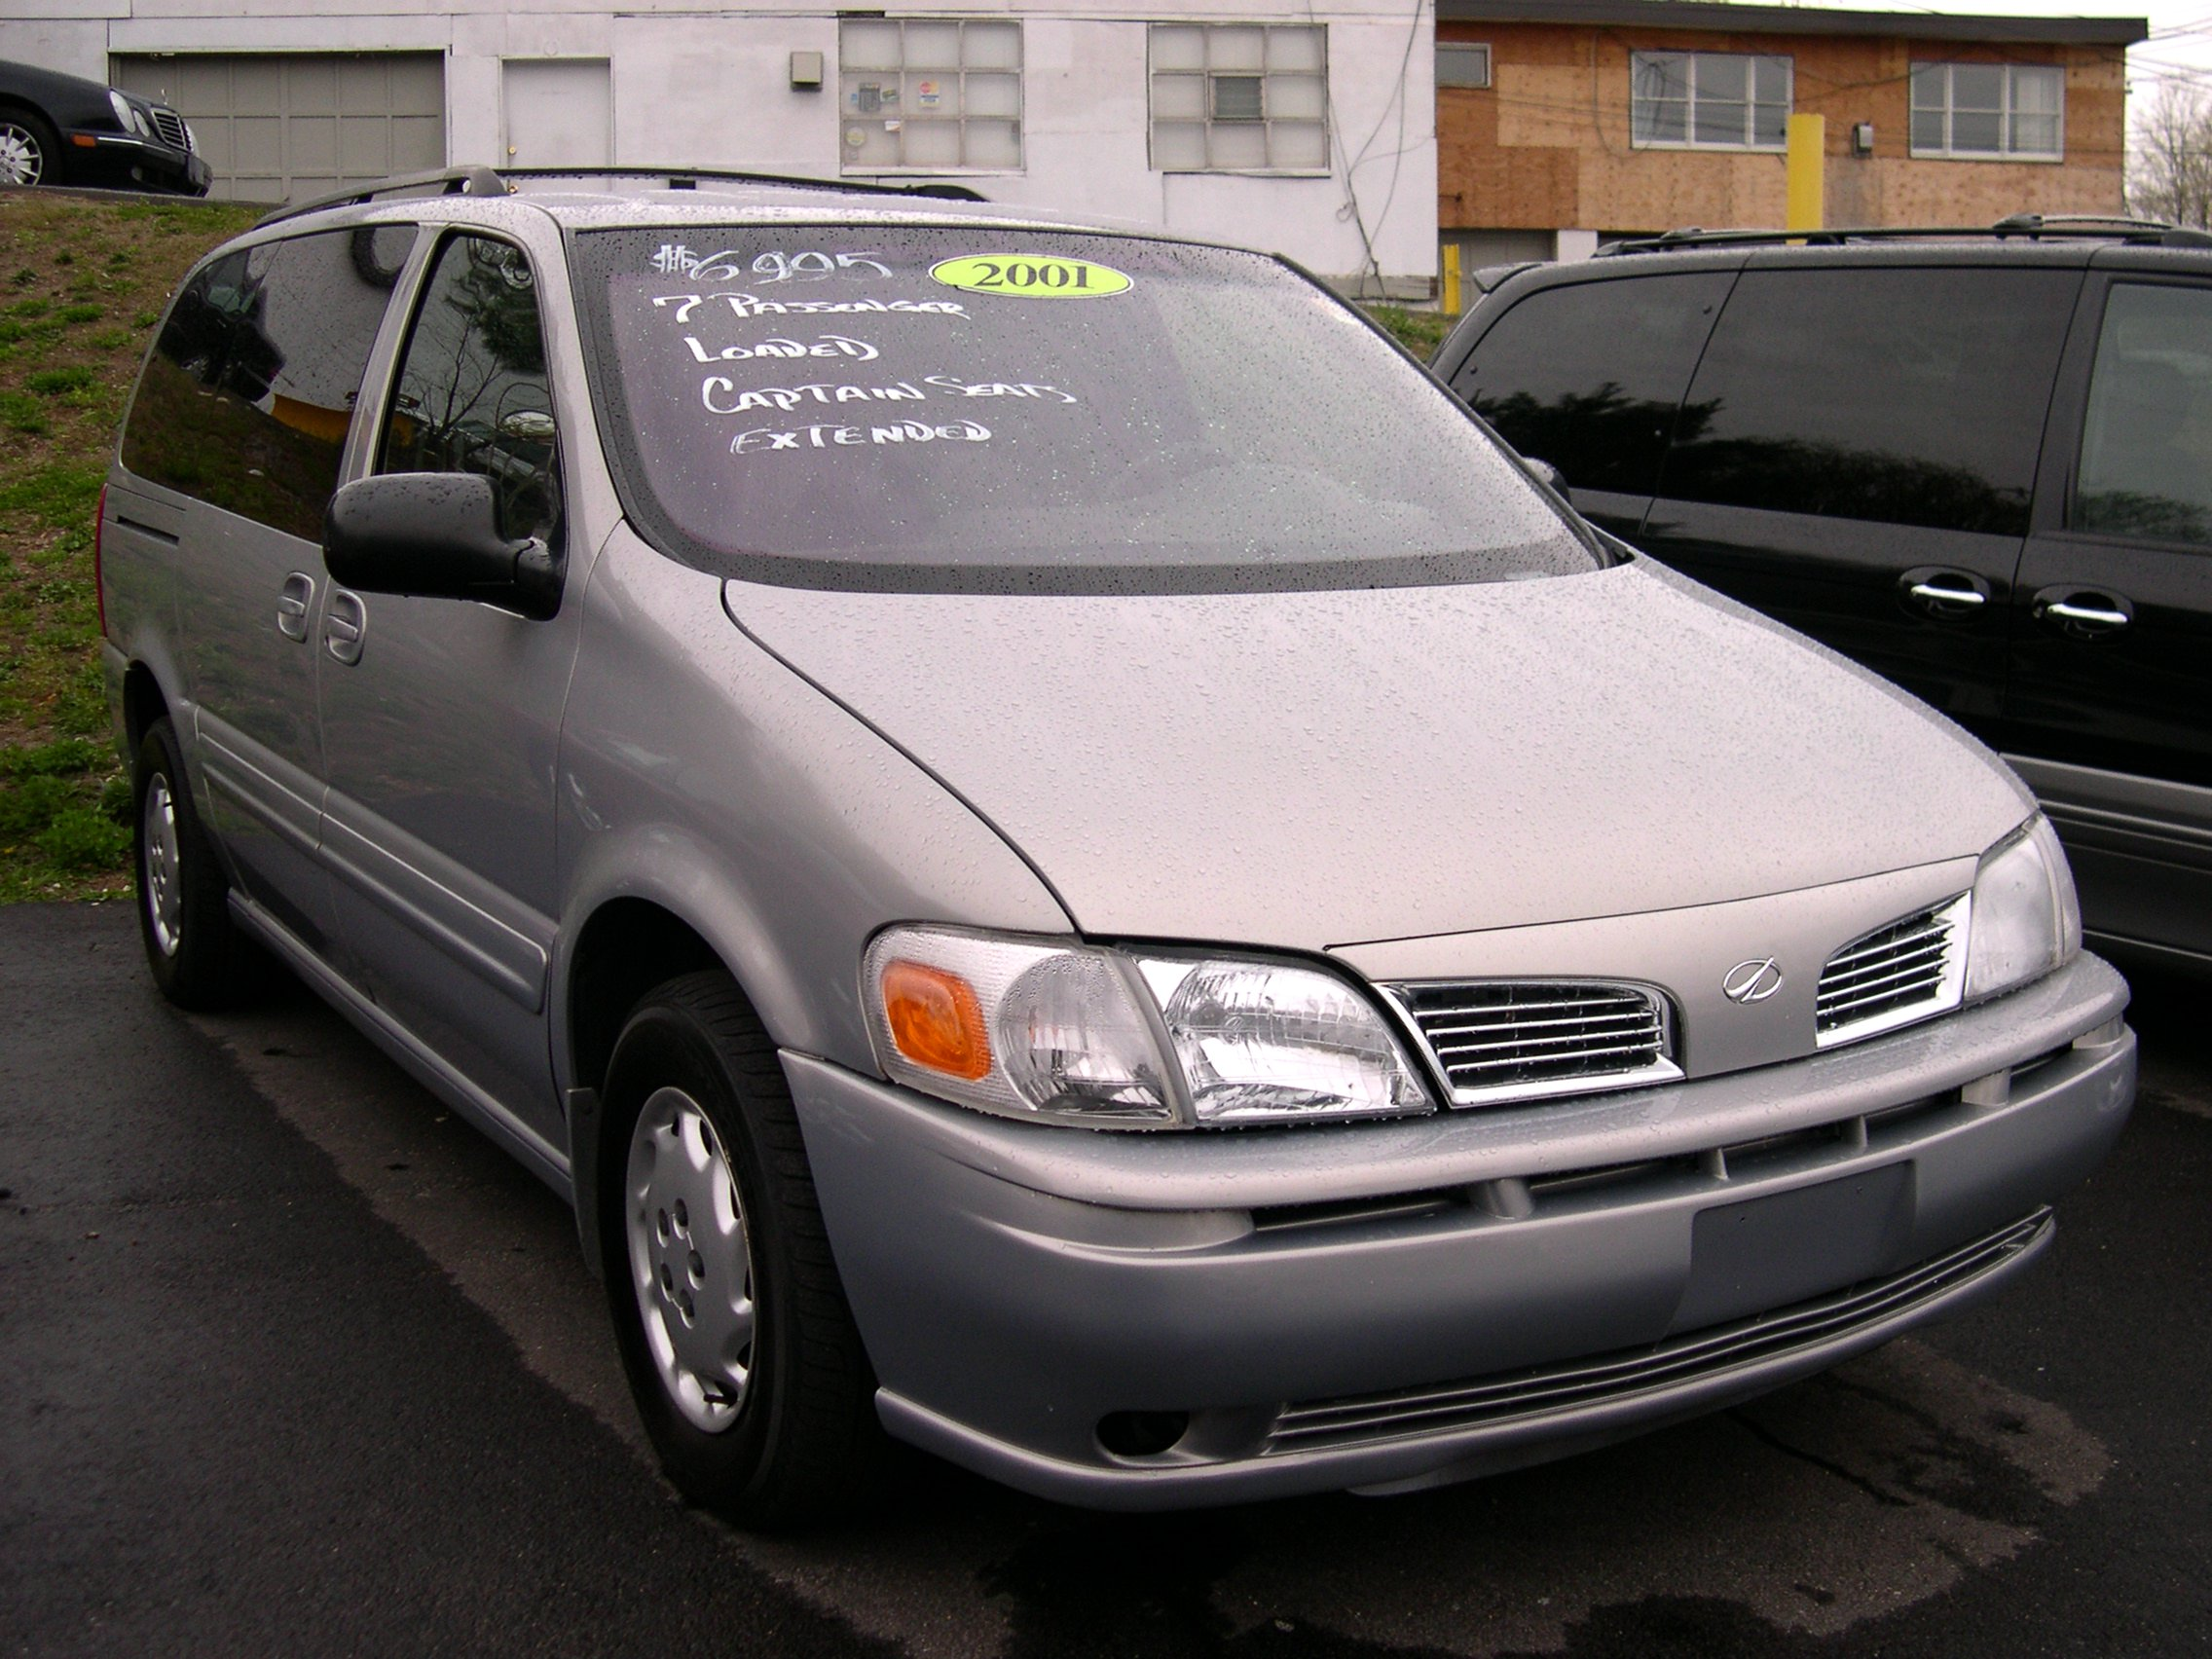 2004 Oldsmobile Silhouette Gray | 200  Interior and Exterior Images